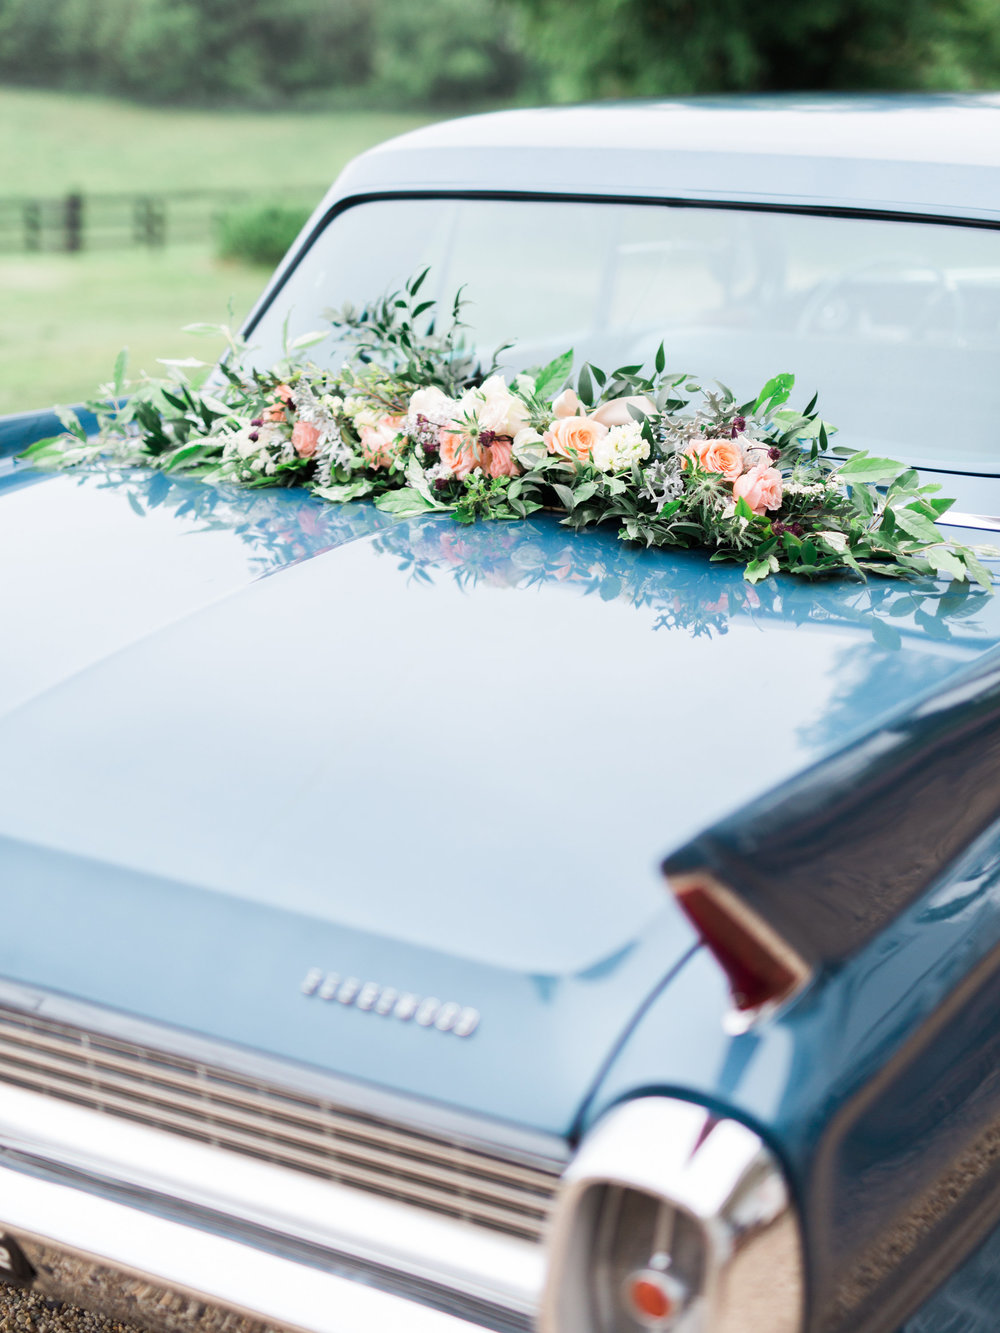 Classic Car with Flowers